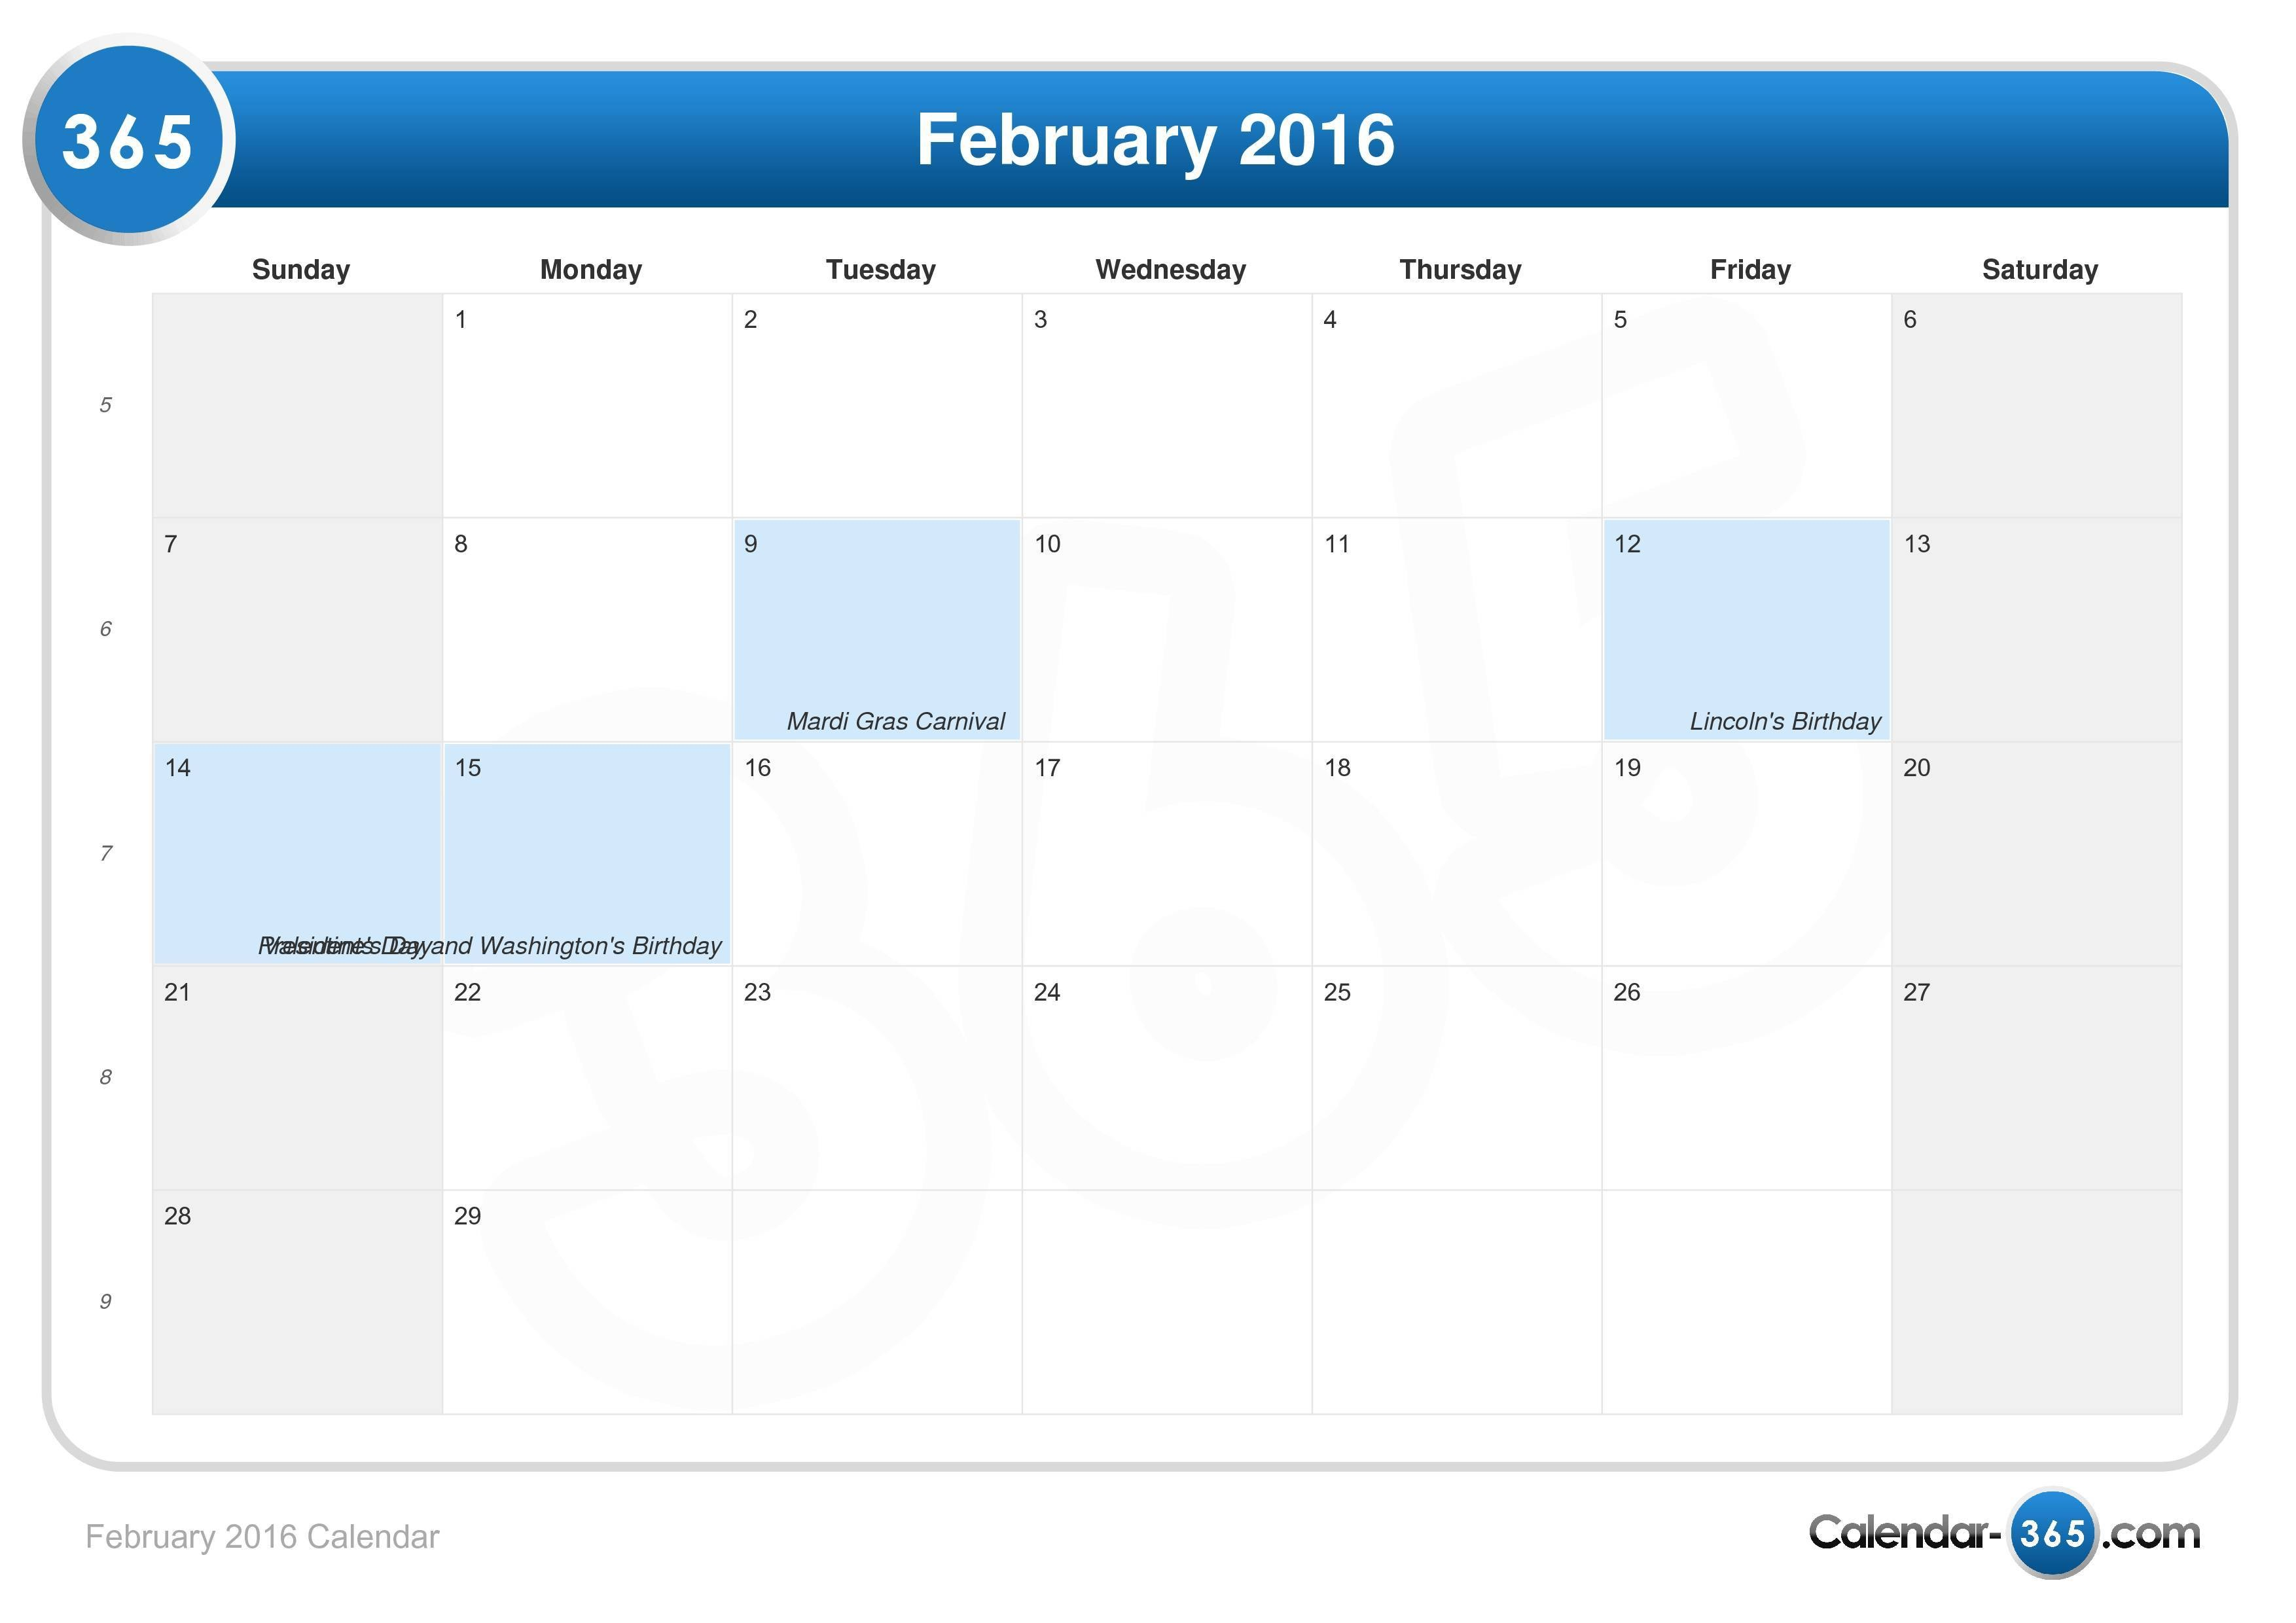 Calendario Abril 2019 Excel Más Actual February 2016 Calendar Of Calendario Abril 2019 Excel Recientes Calendario Julio 2019 Papeler­a Pinterest